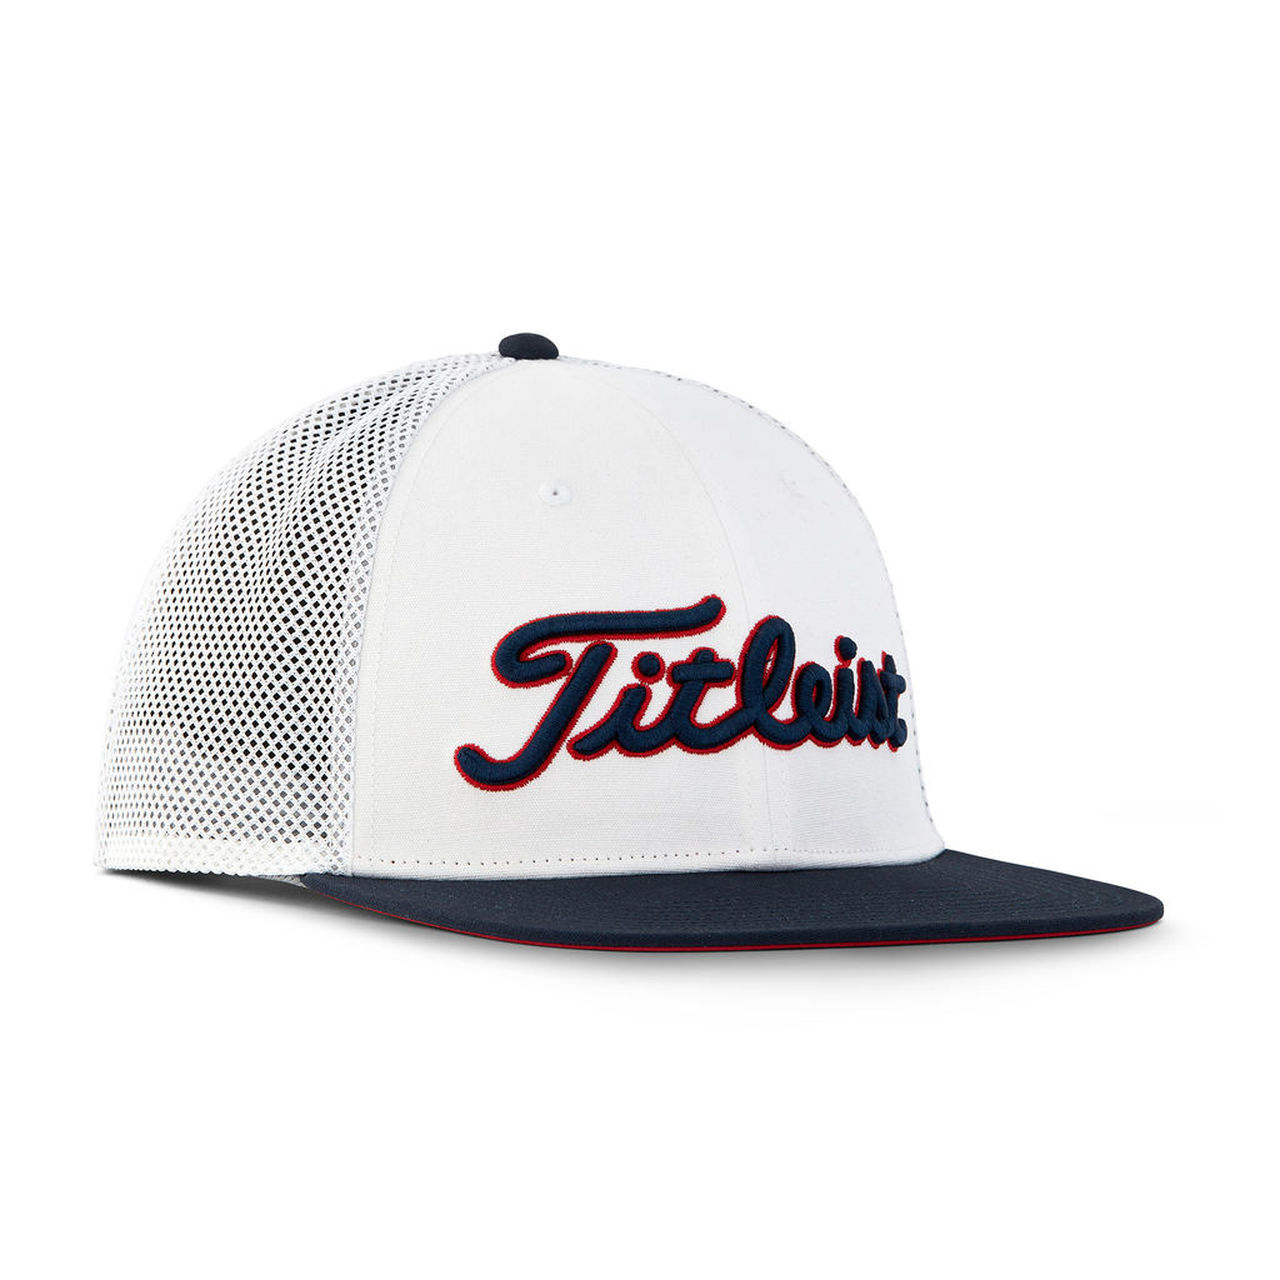 Titleist Golf- Stars & Stripes Tour Flat Bill Mesh Hat